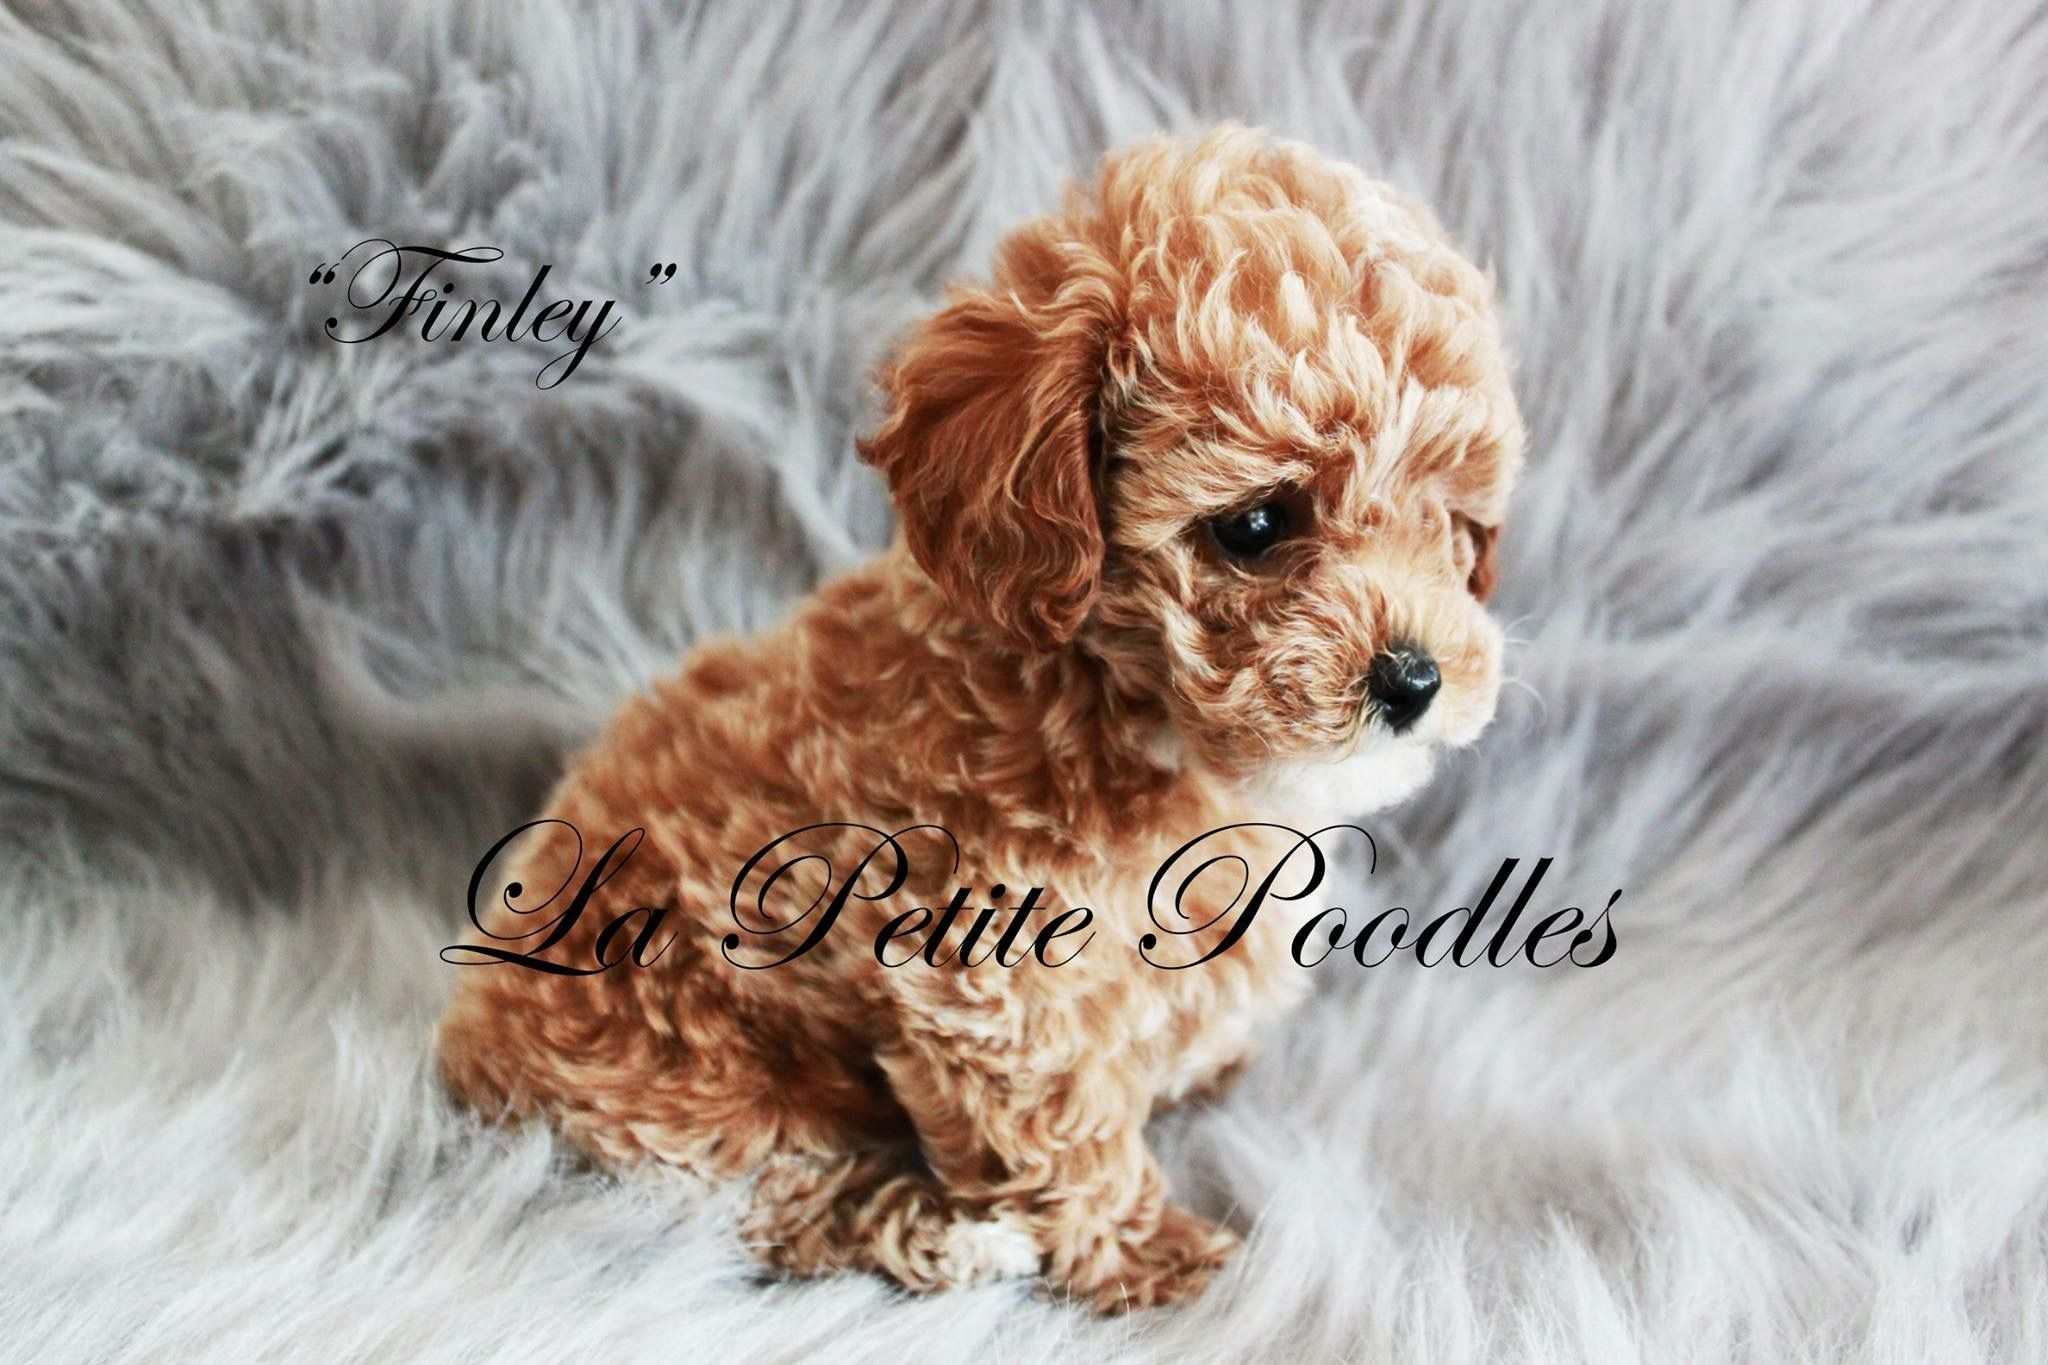 Teacup poodle lapetitepoodles Teacup dog breeds